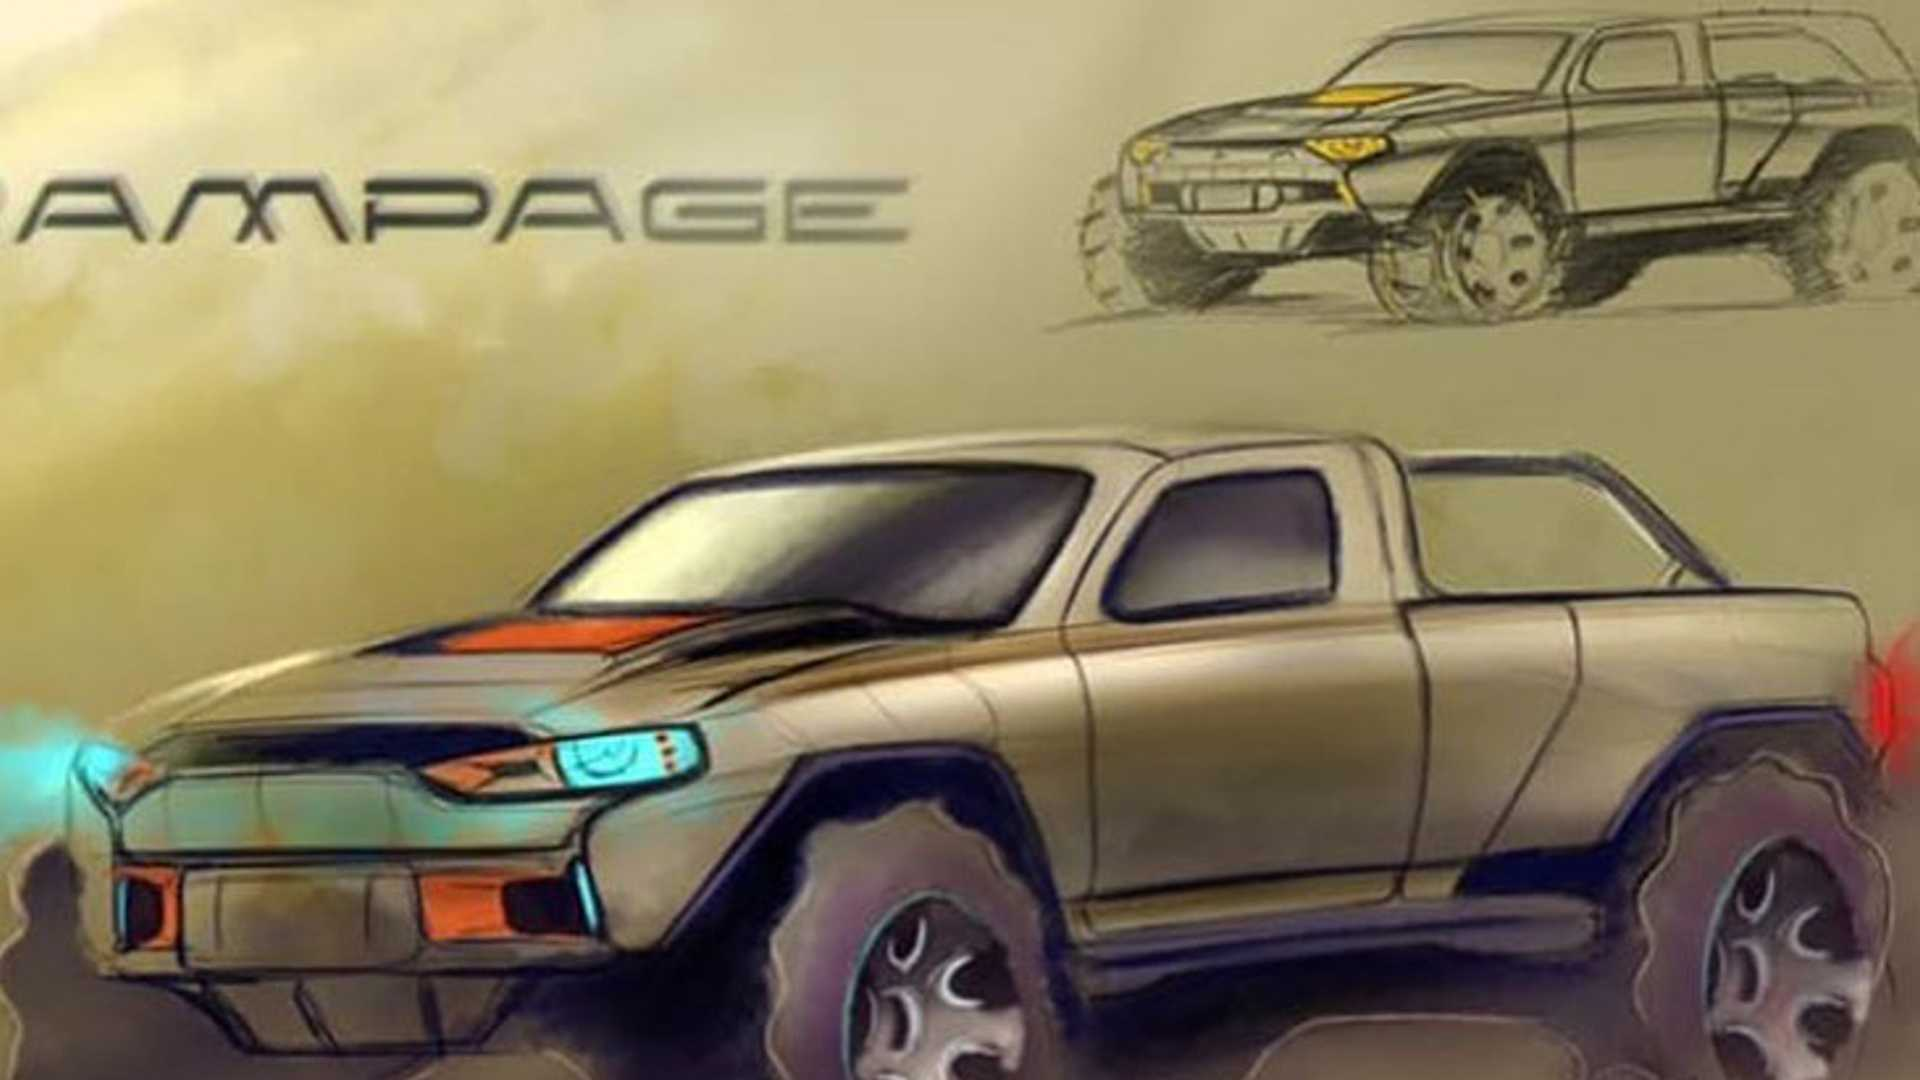 fca-drive-for-design-ram-sketch-battle